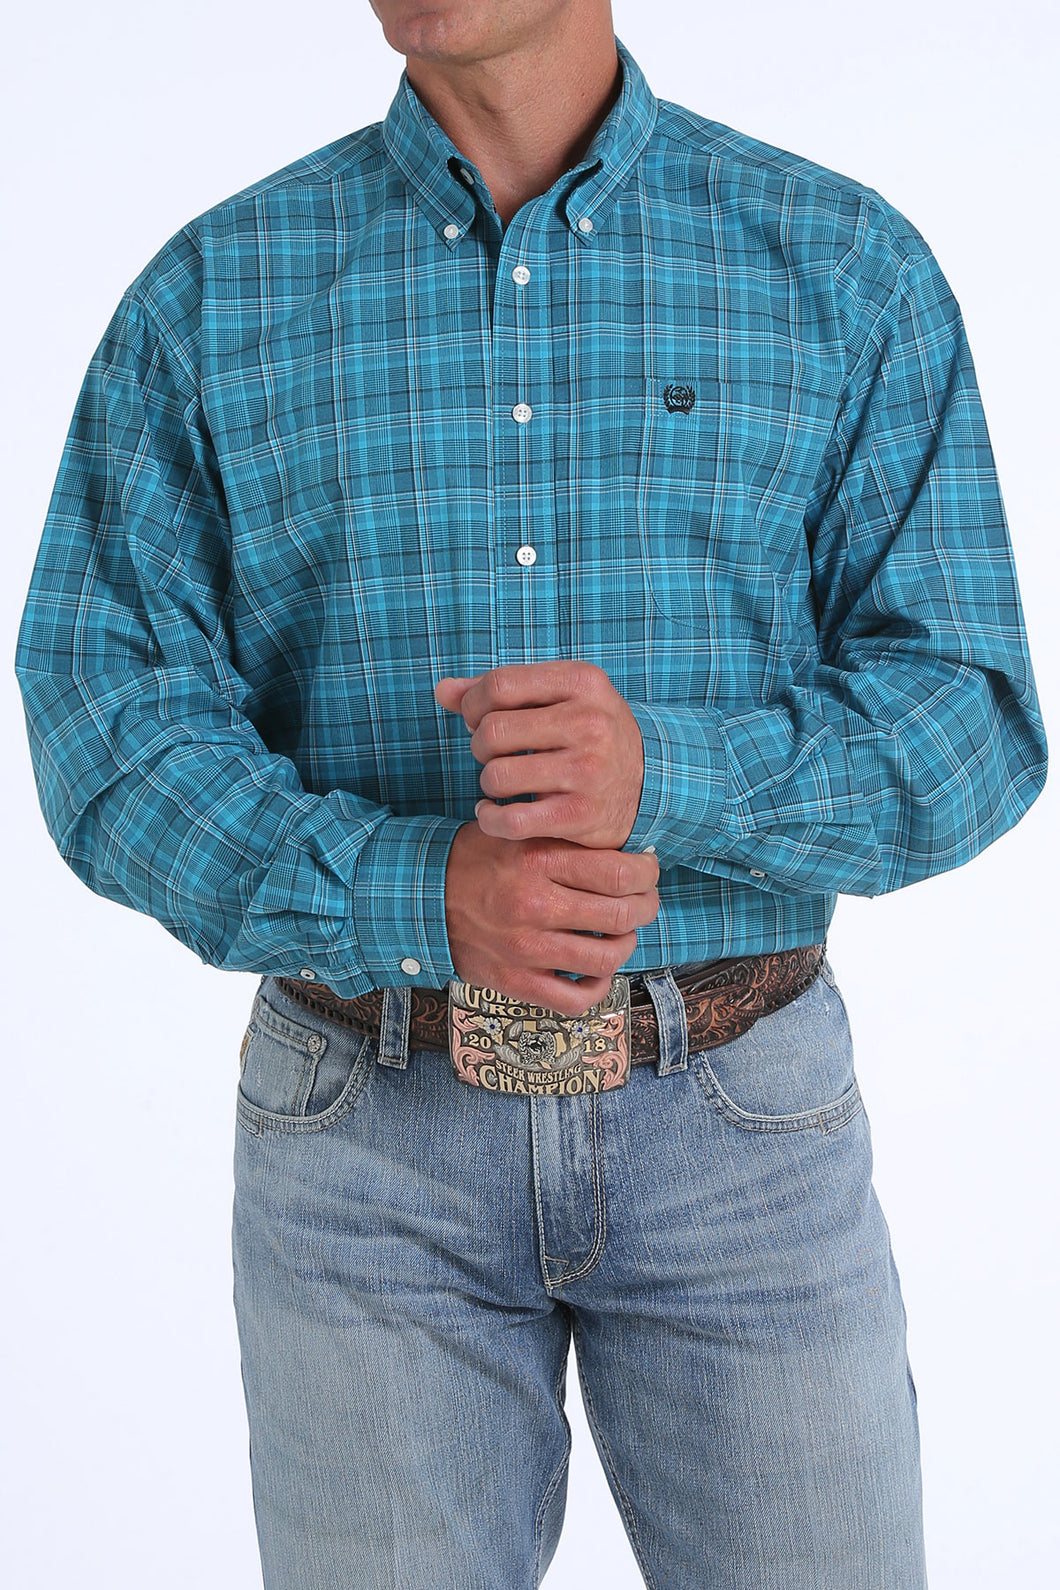 'Cinch' MTW1104834 - LS Button Down Plaid Shirt - Teal